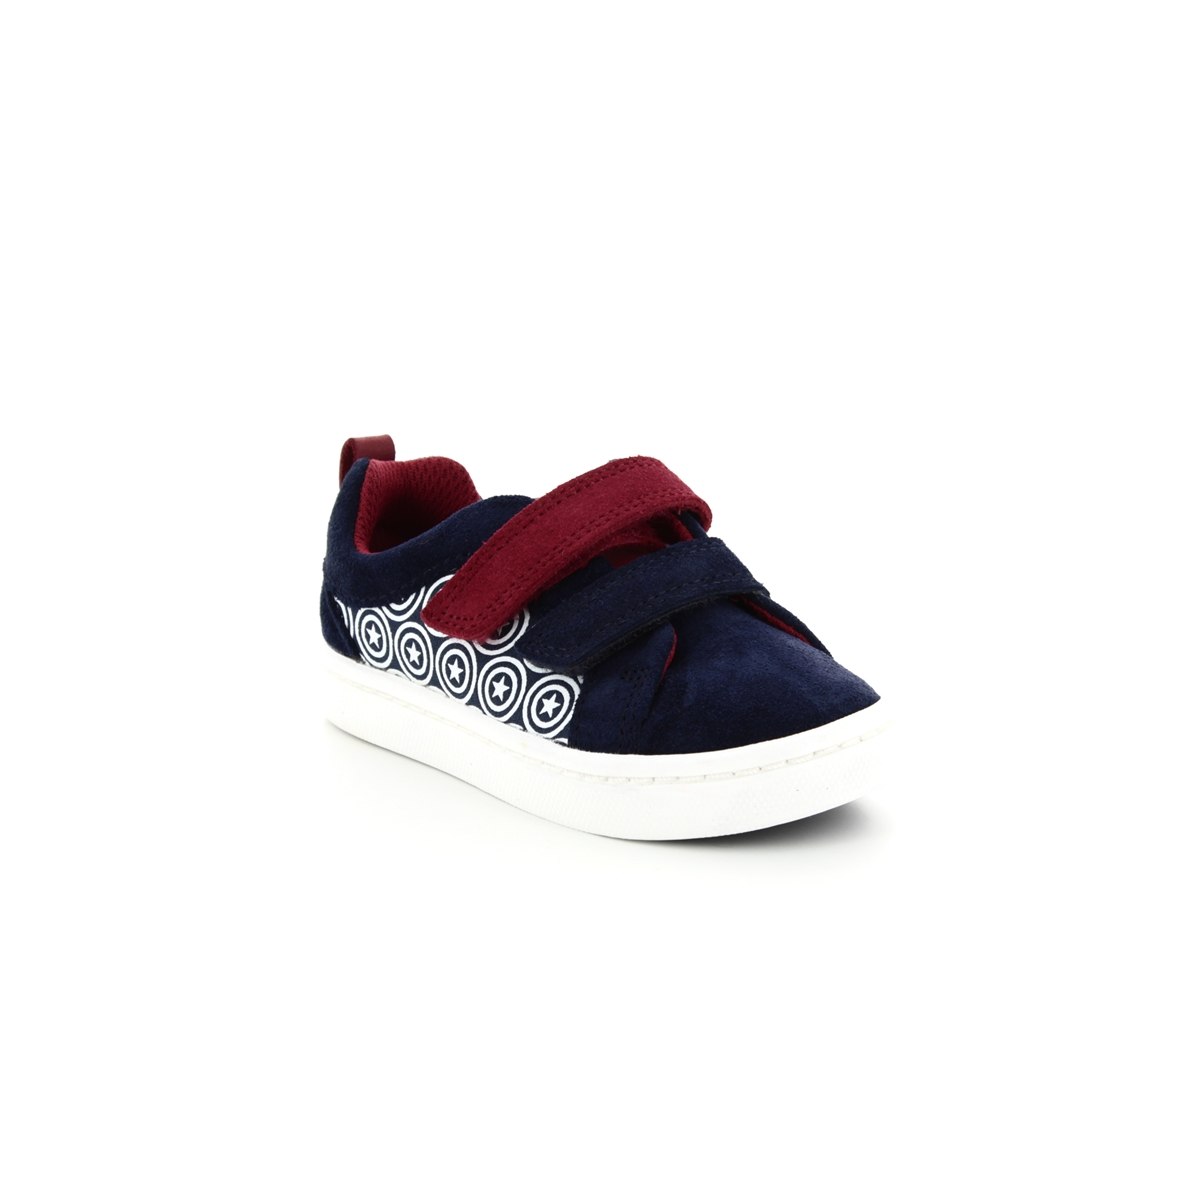 37a53b33fa7 Clarks First Shoes - Blue Suede - 3764 77G CITY HERO LO